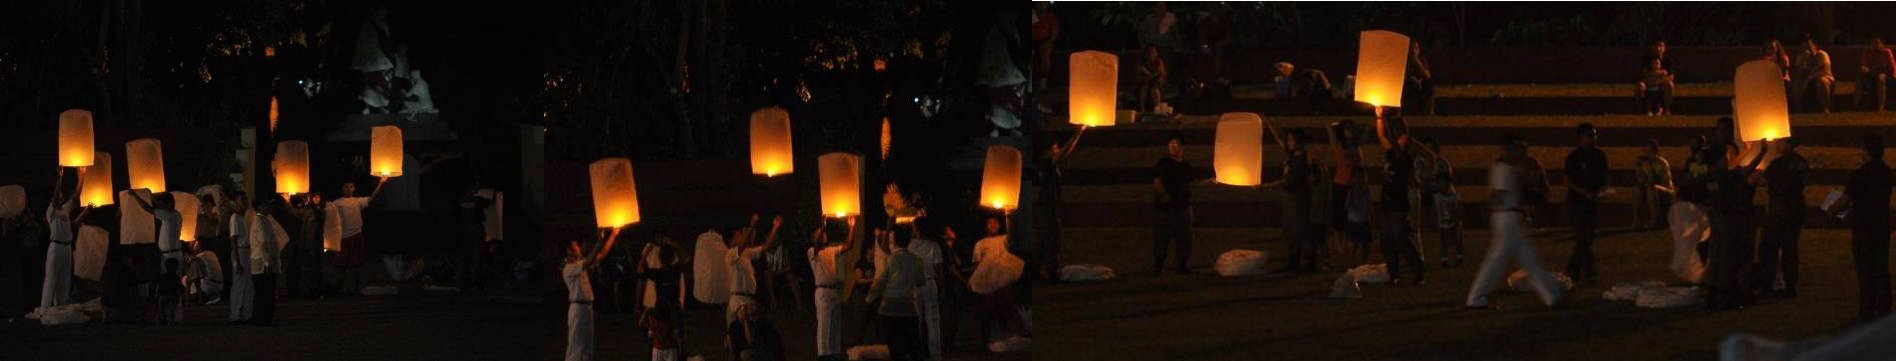 100 giant sky lanterns to be launched from the ampitheater